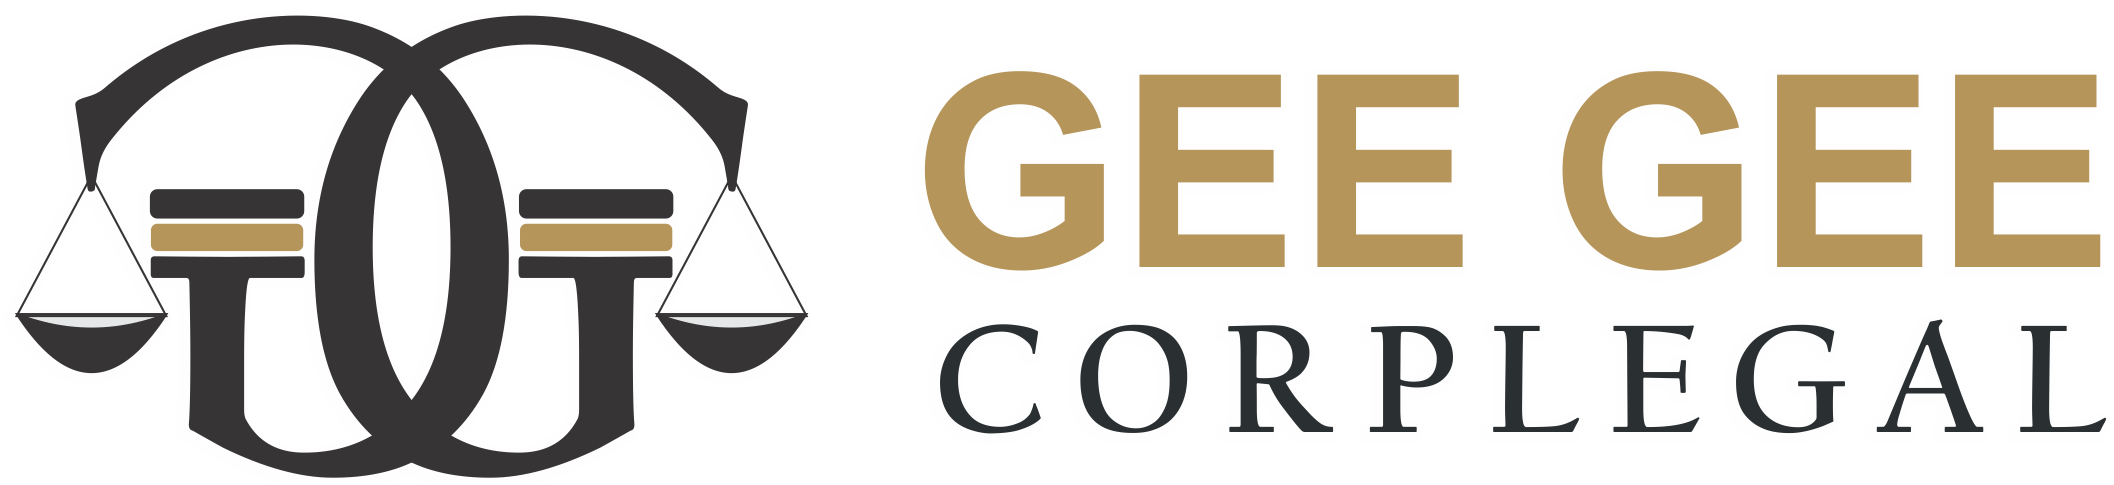 Gee Gee Corp Legal Logo